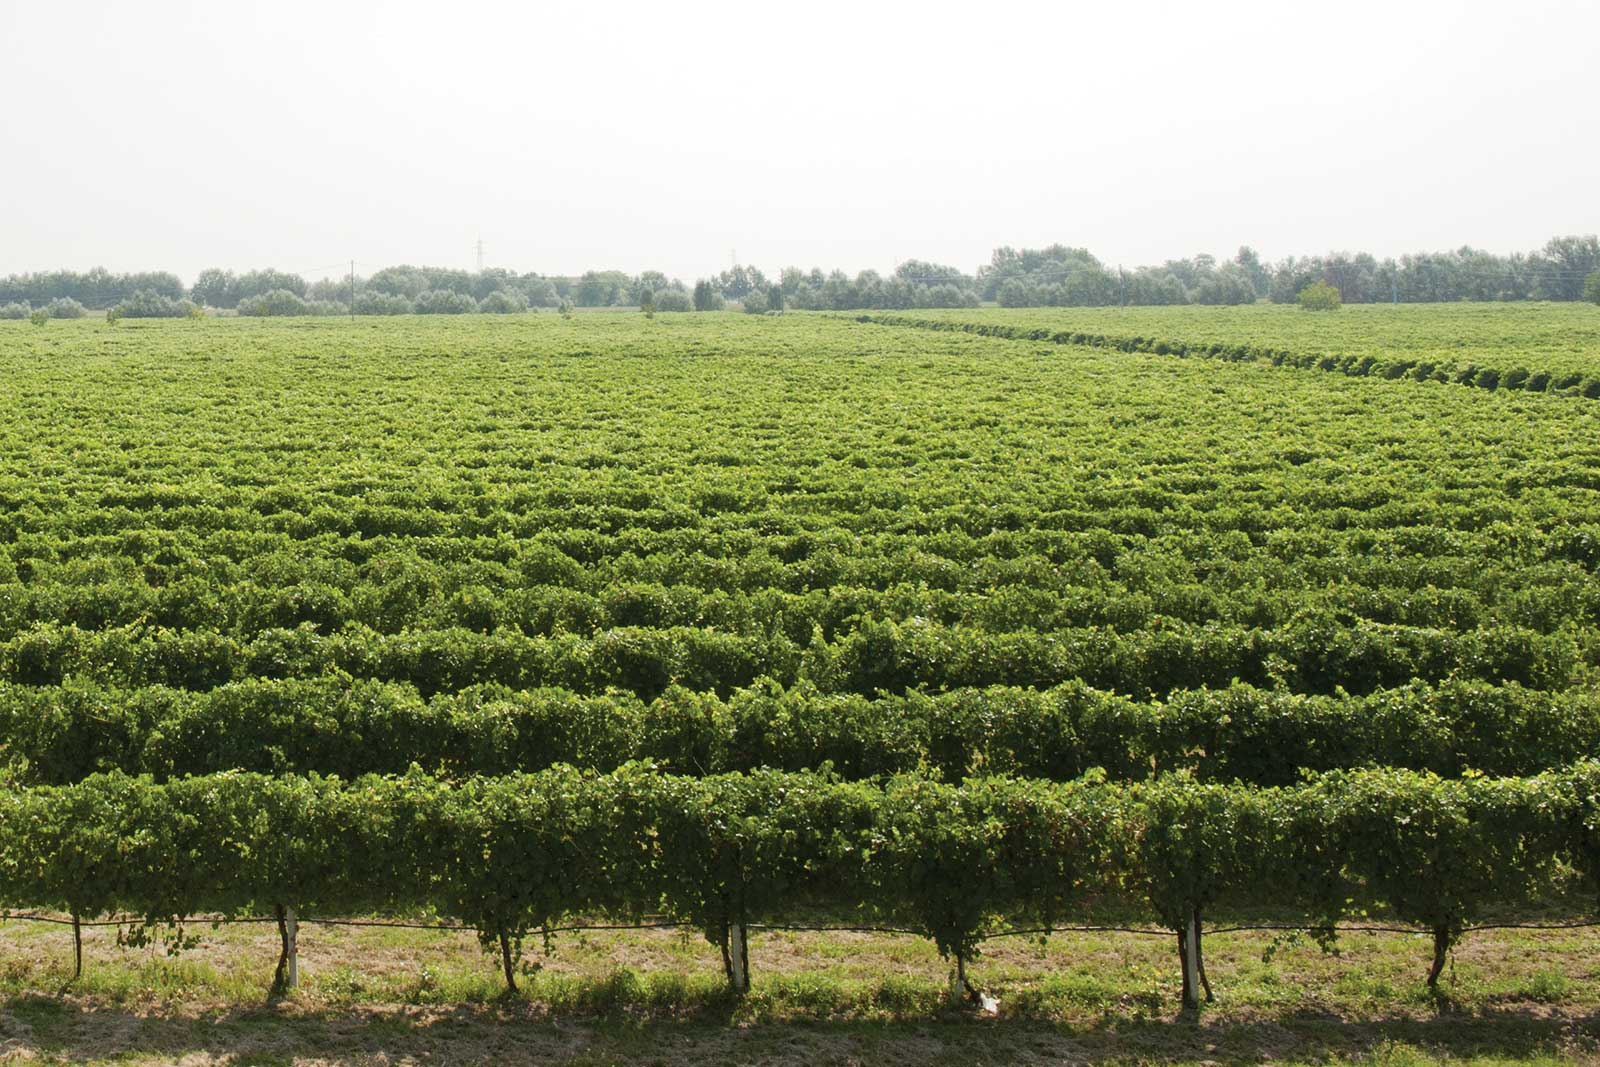 The Lambrusco vineyards of Emilia-Romagna stretch across mostly flat land in the Po River Basin. ©Medici Ermete